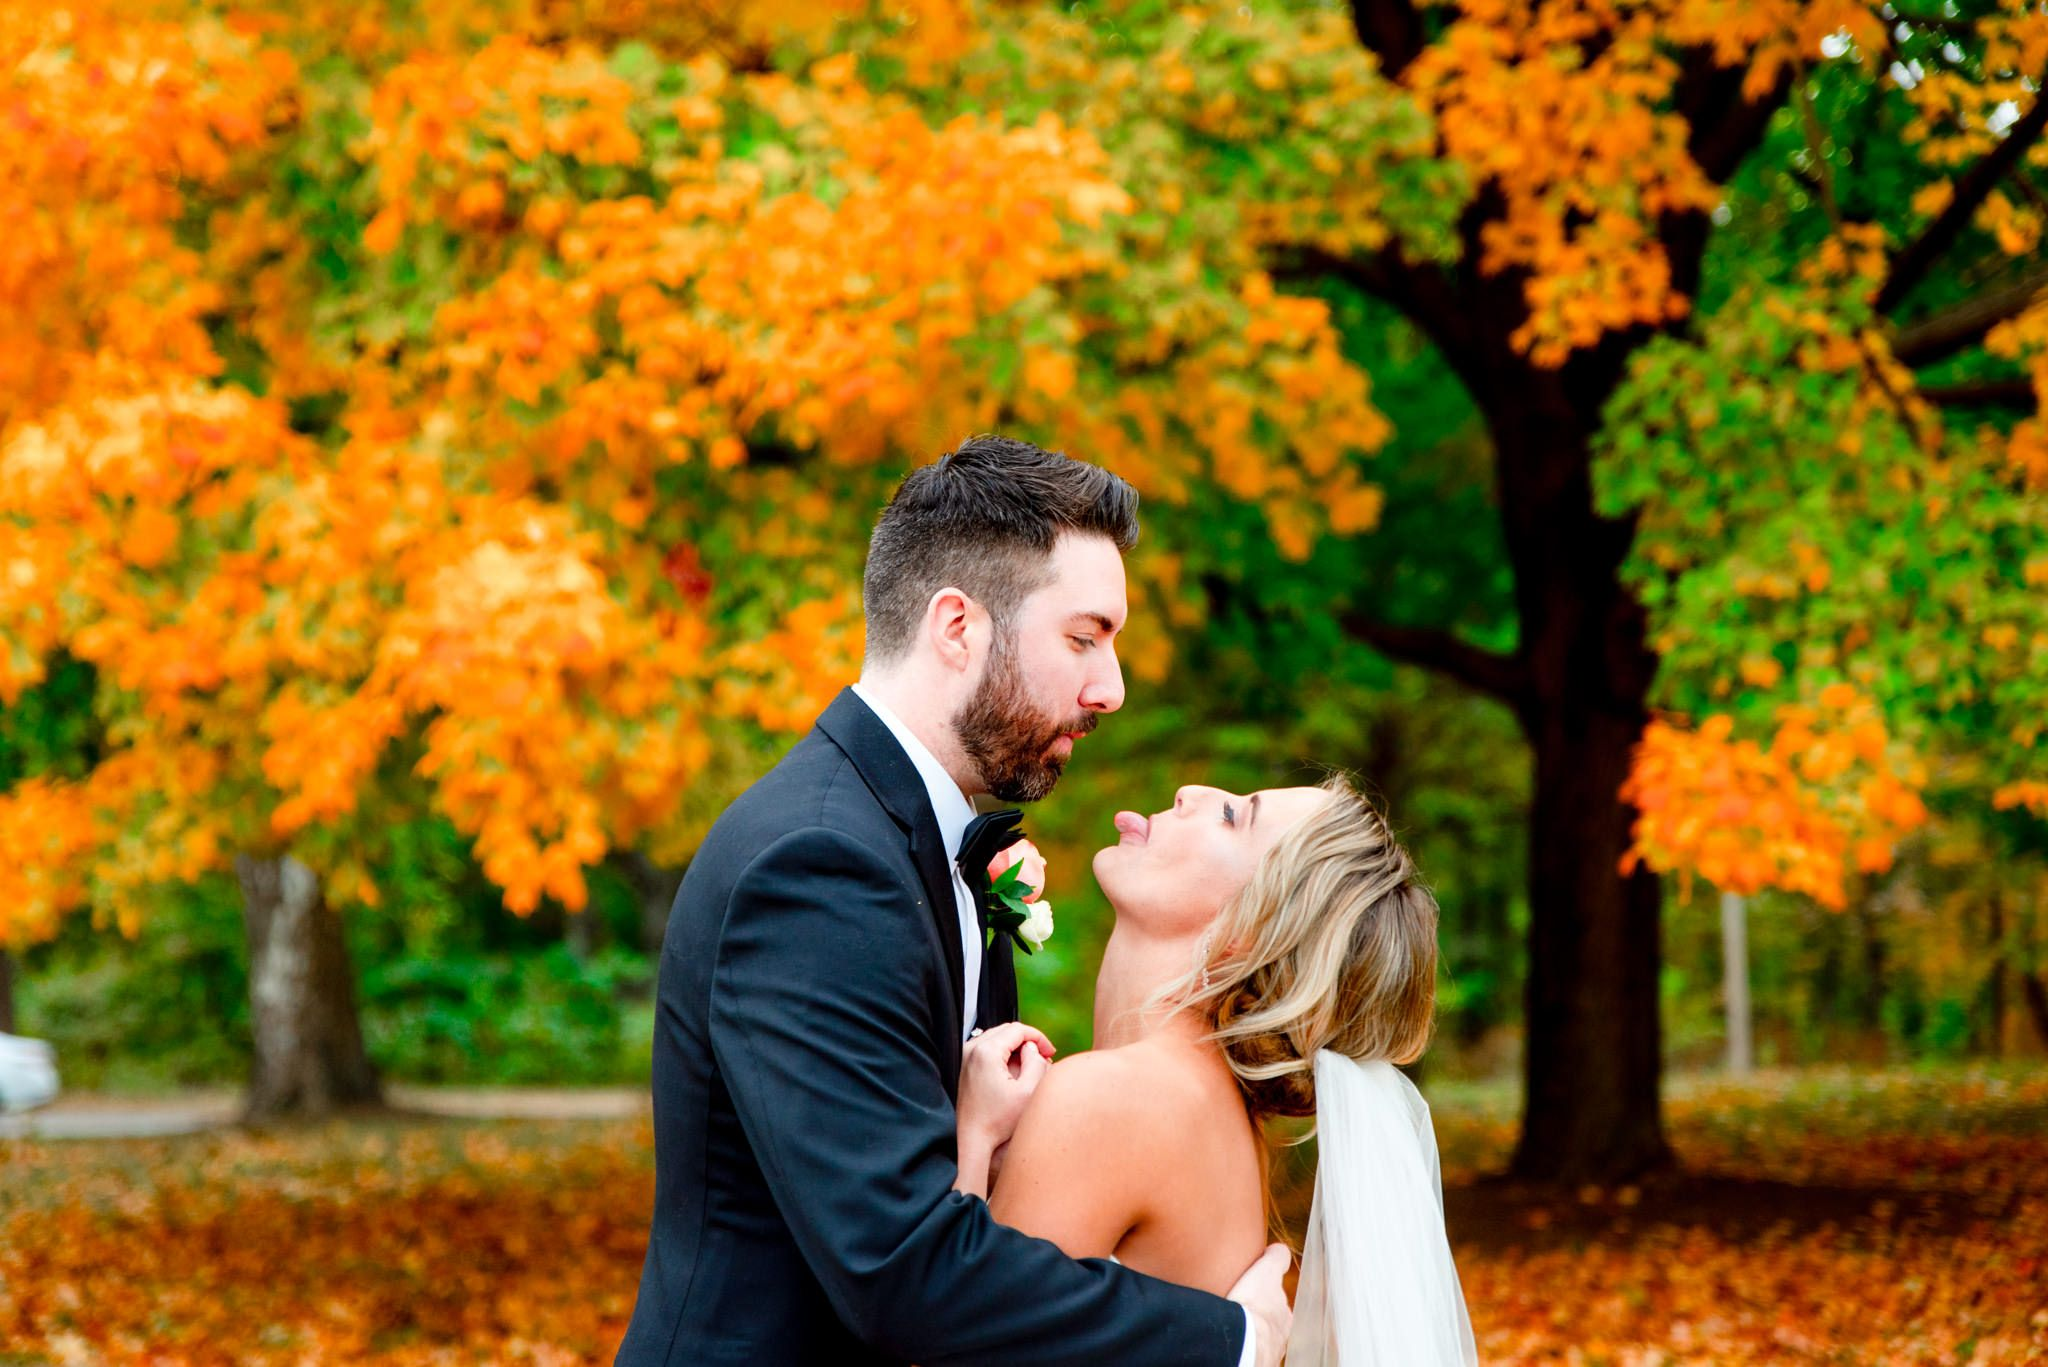 bride sticking tongue out at groom during fall wedding pictures in STL Forest Park